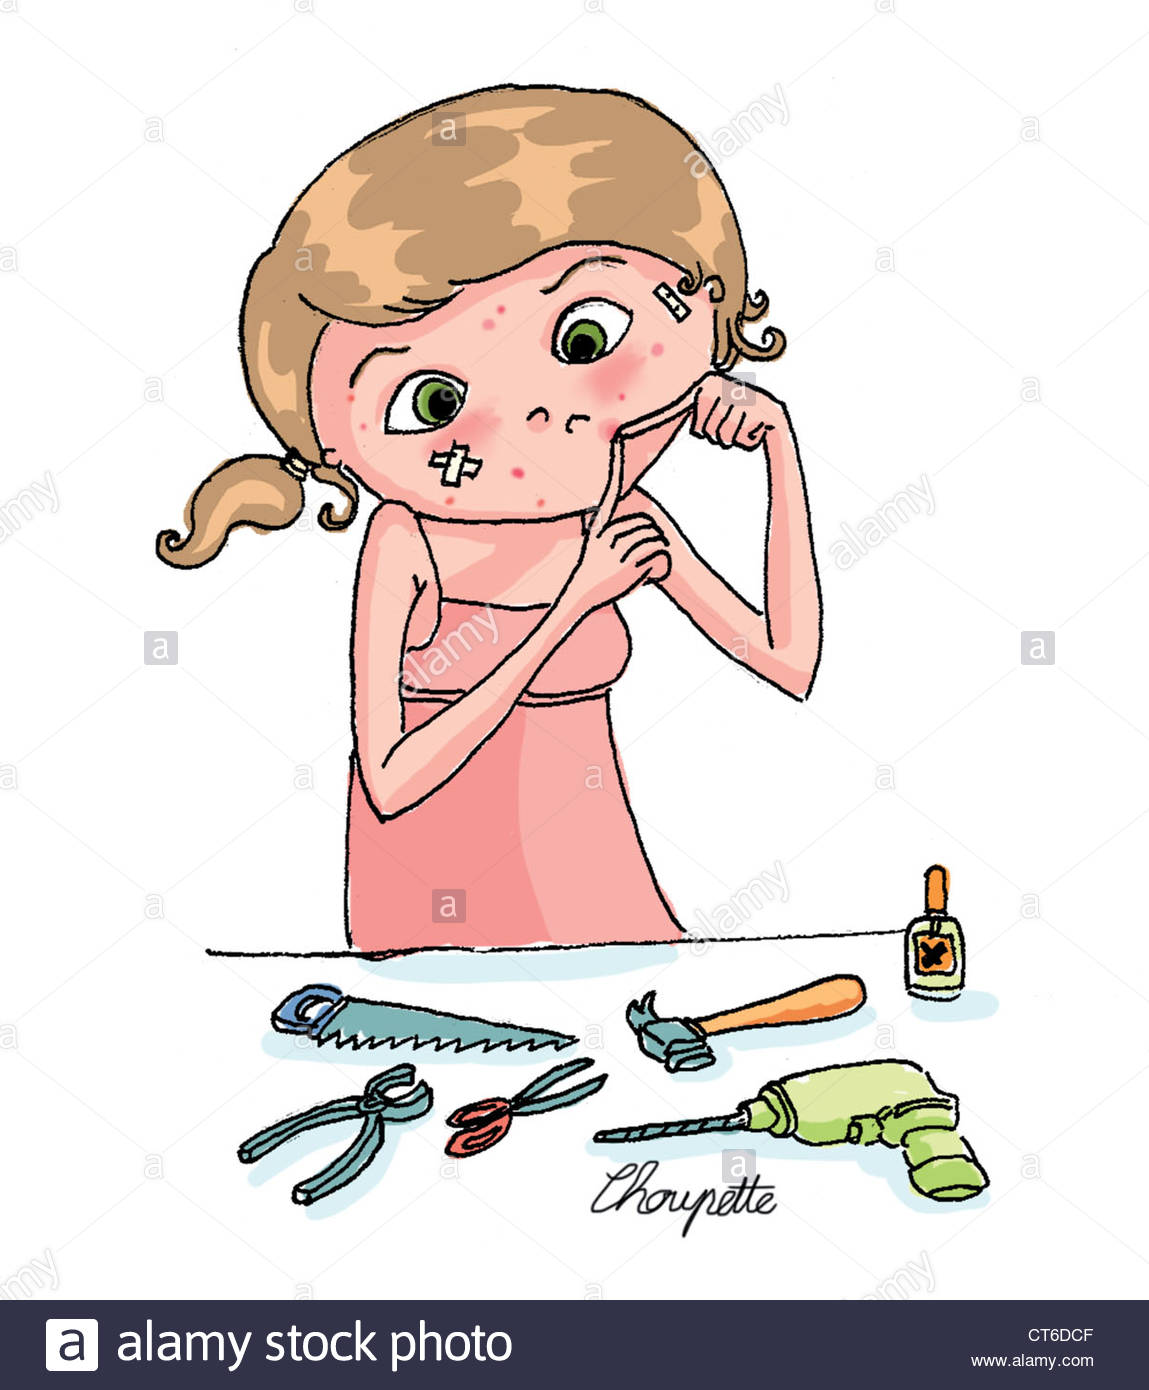 1149x1390 Acne, Drawing Stock Photo 49314735